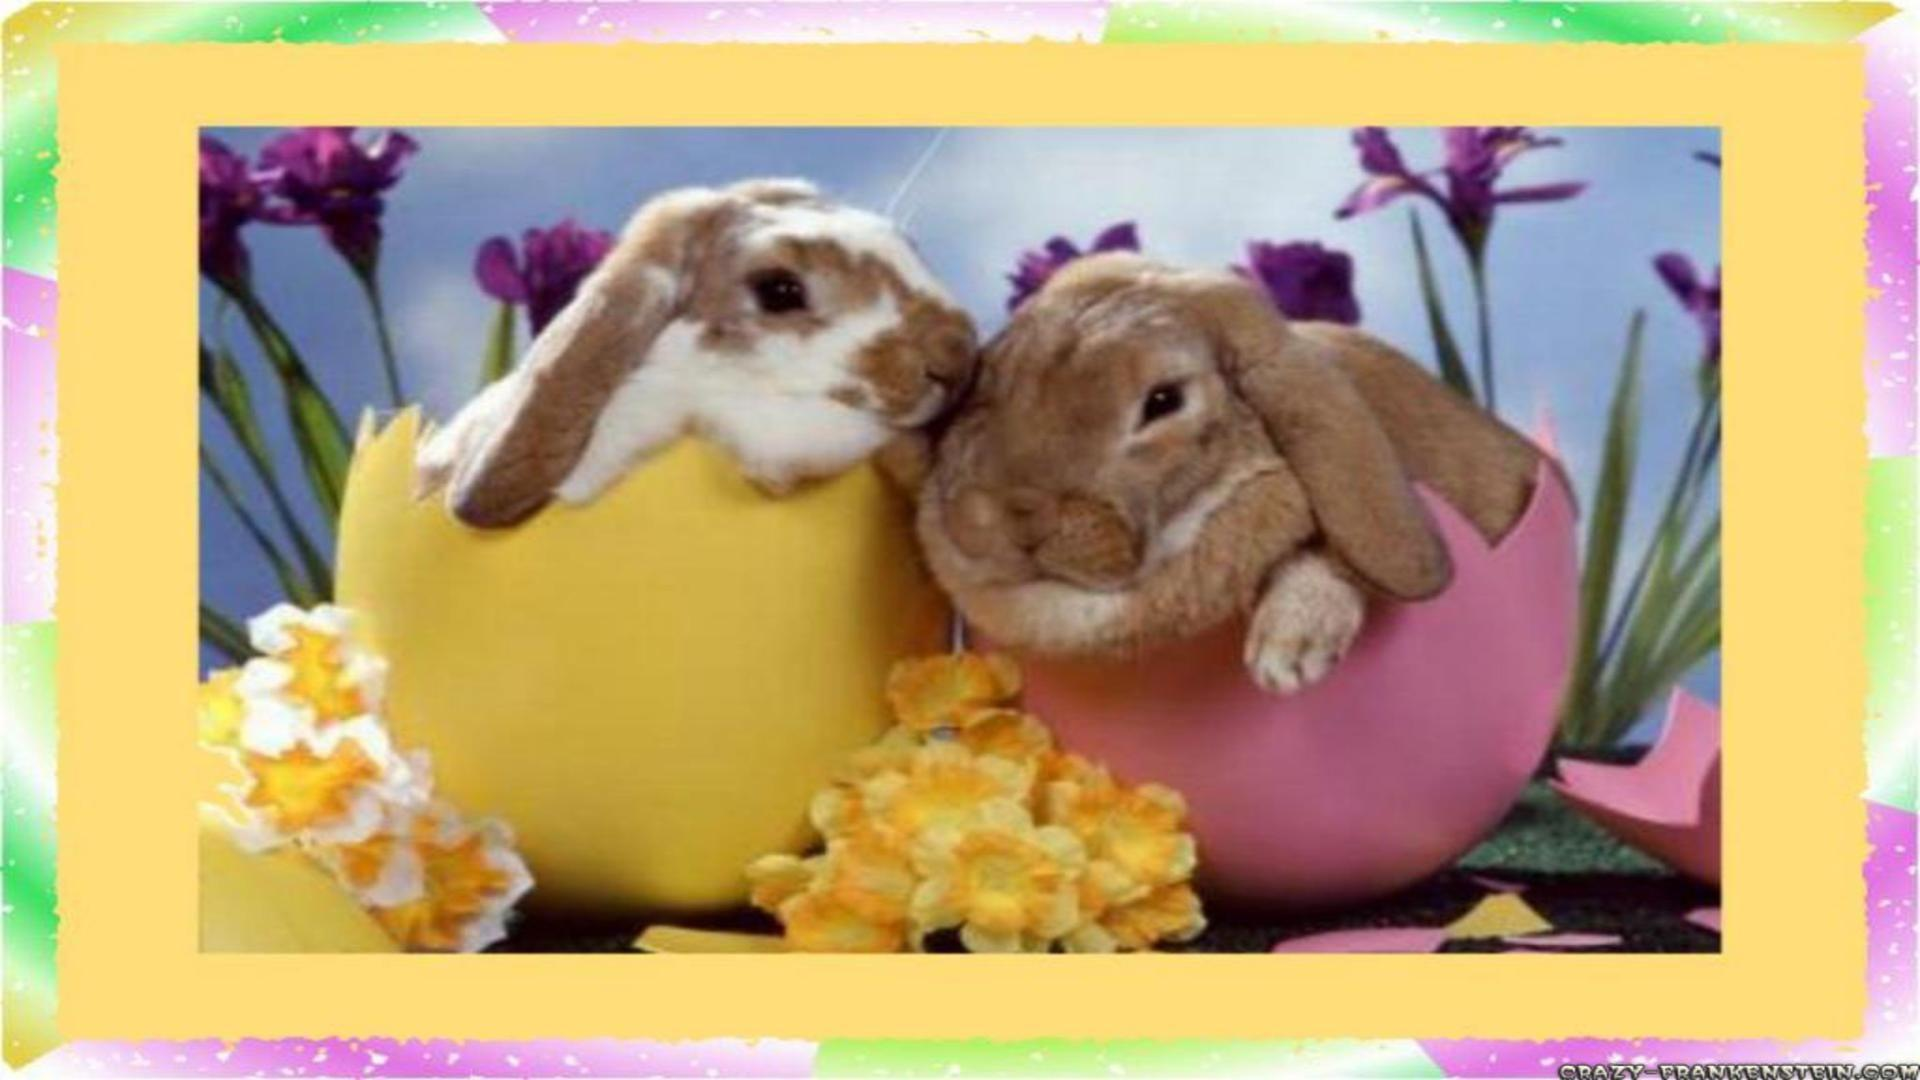 Easter Wallpapers Android Apps On Google Play 1920x1080